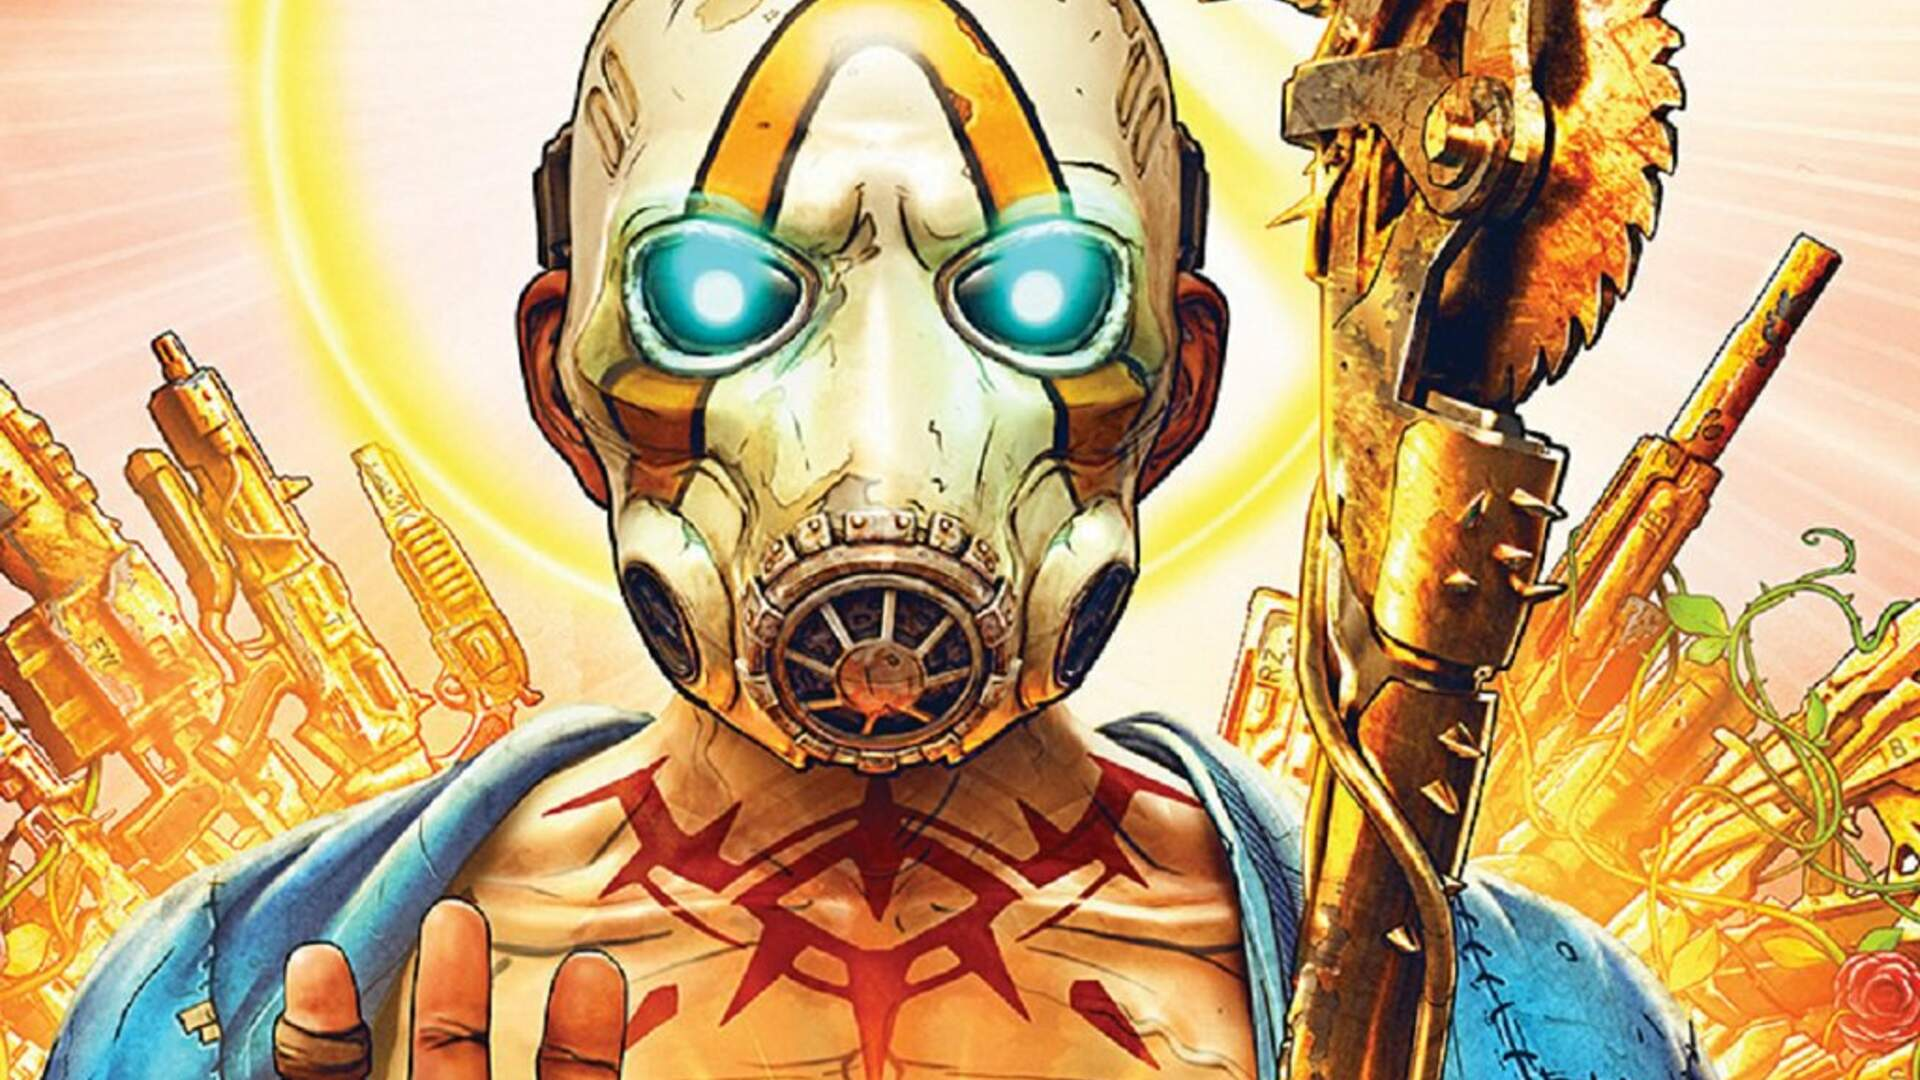 Watch Today S Borderlands 3 Gameplay Here And Be Ready For Lots Of